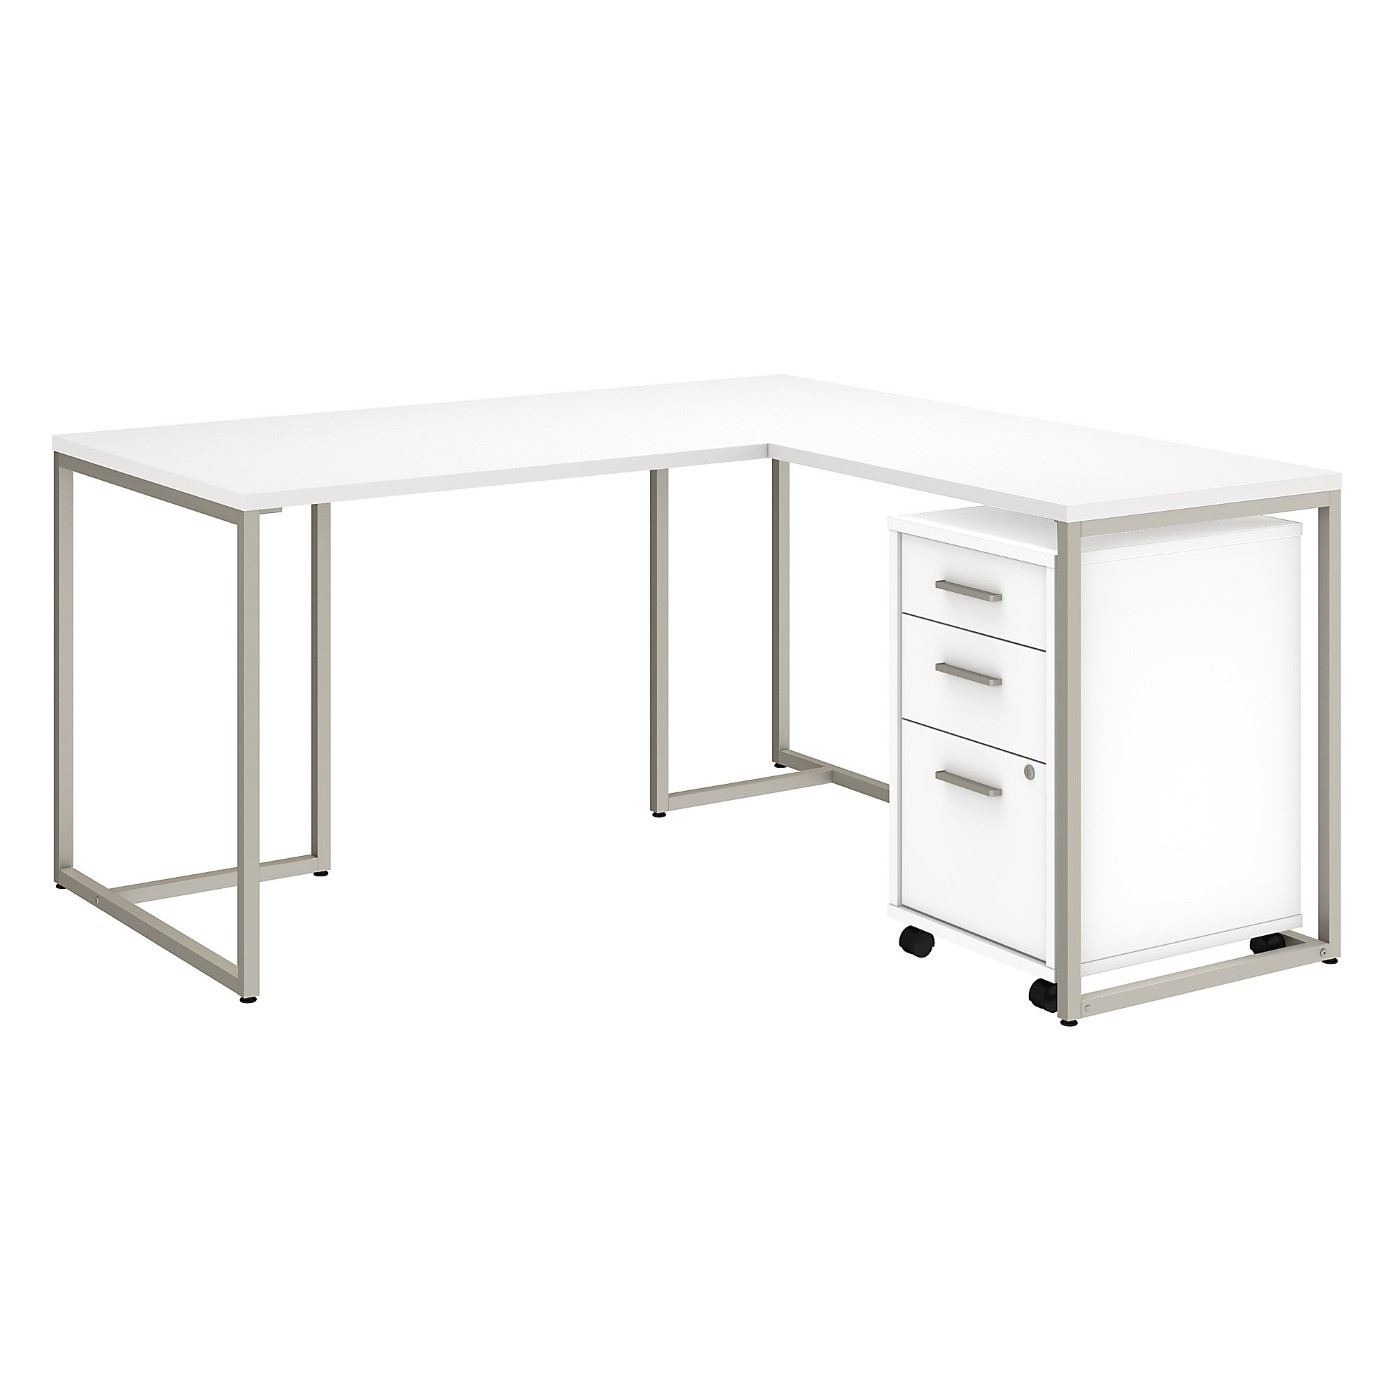 OFFICE BY KATHY IRELAND� METHOD 60W L SHAPED DESK WITH 30W RETURN AND MOBILE FILE CABINET. FREE SHIPPING